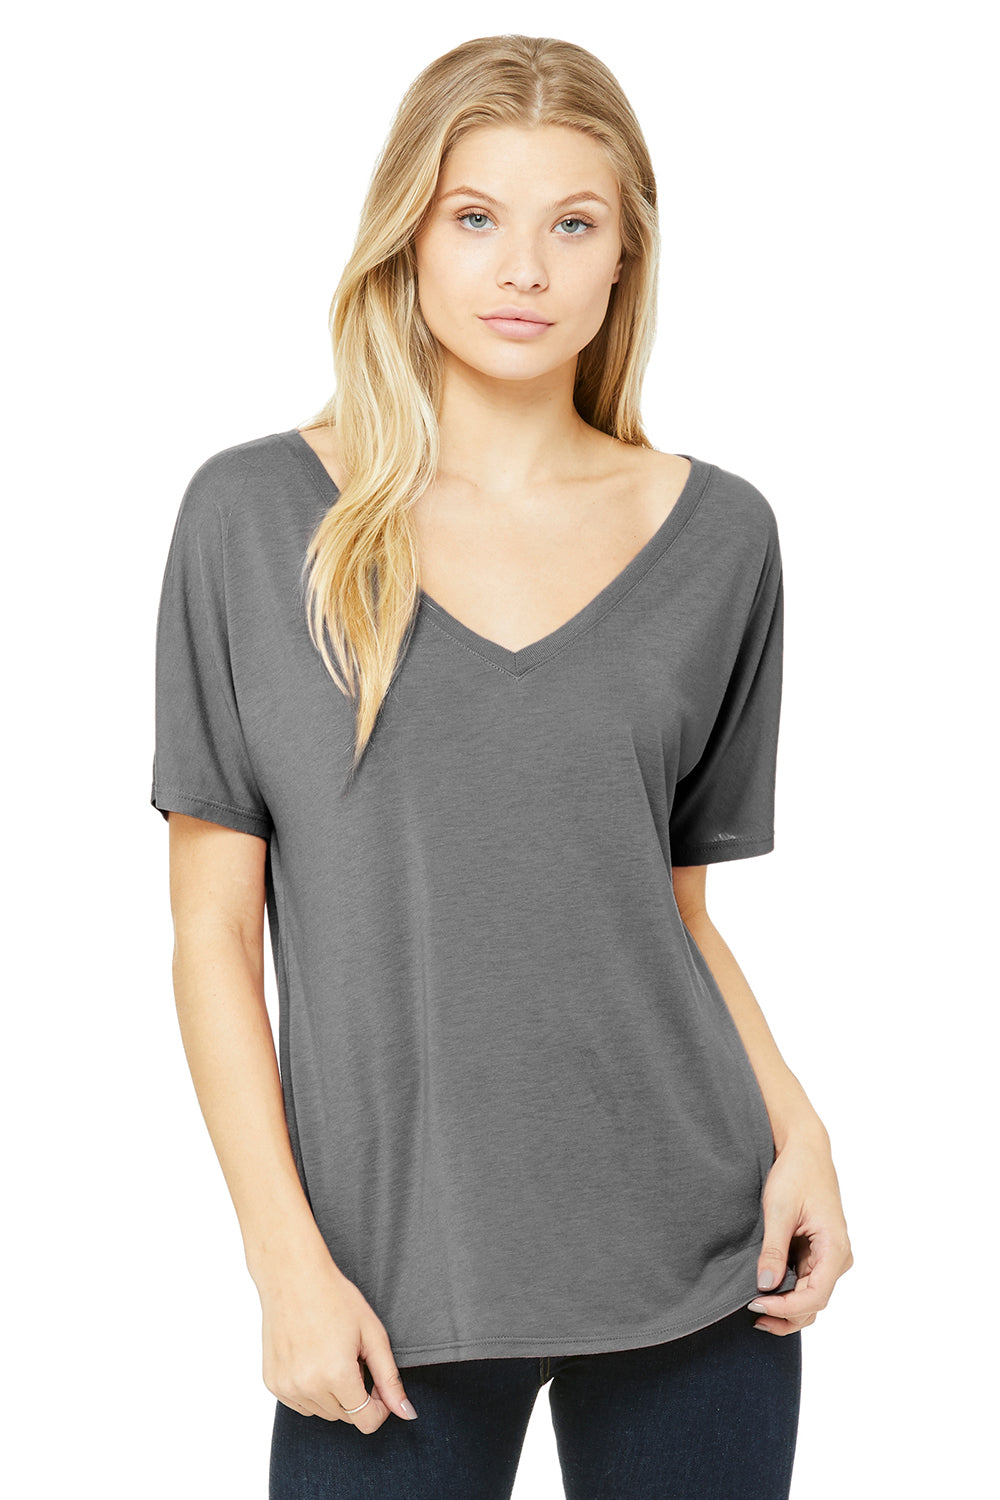 Bella + Canvas 8815 Womens Slouchy Short Sleeve V-Neck T-Shirt Grey Triblend Front